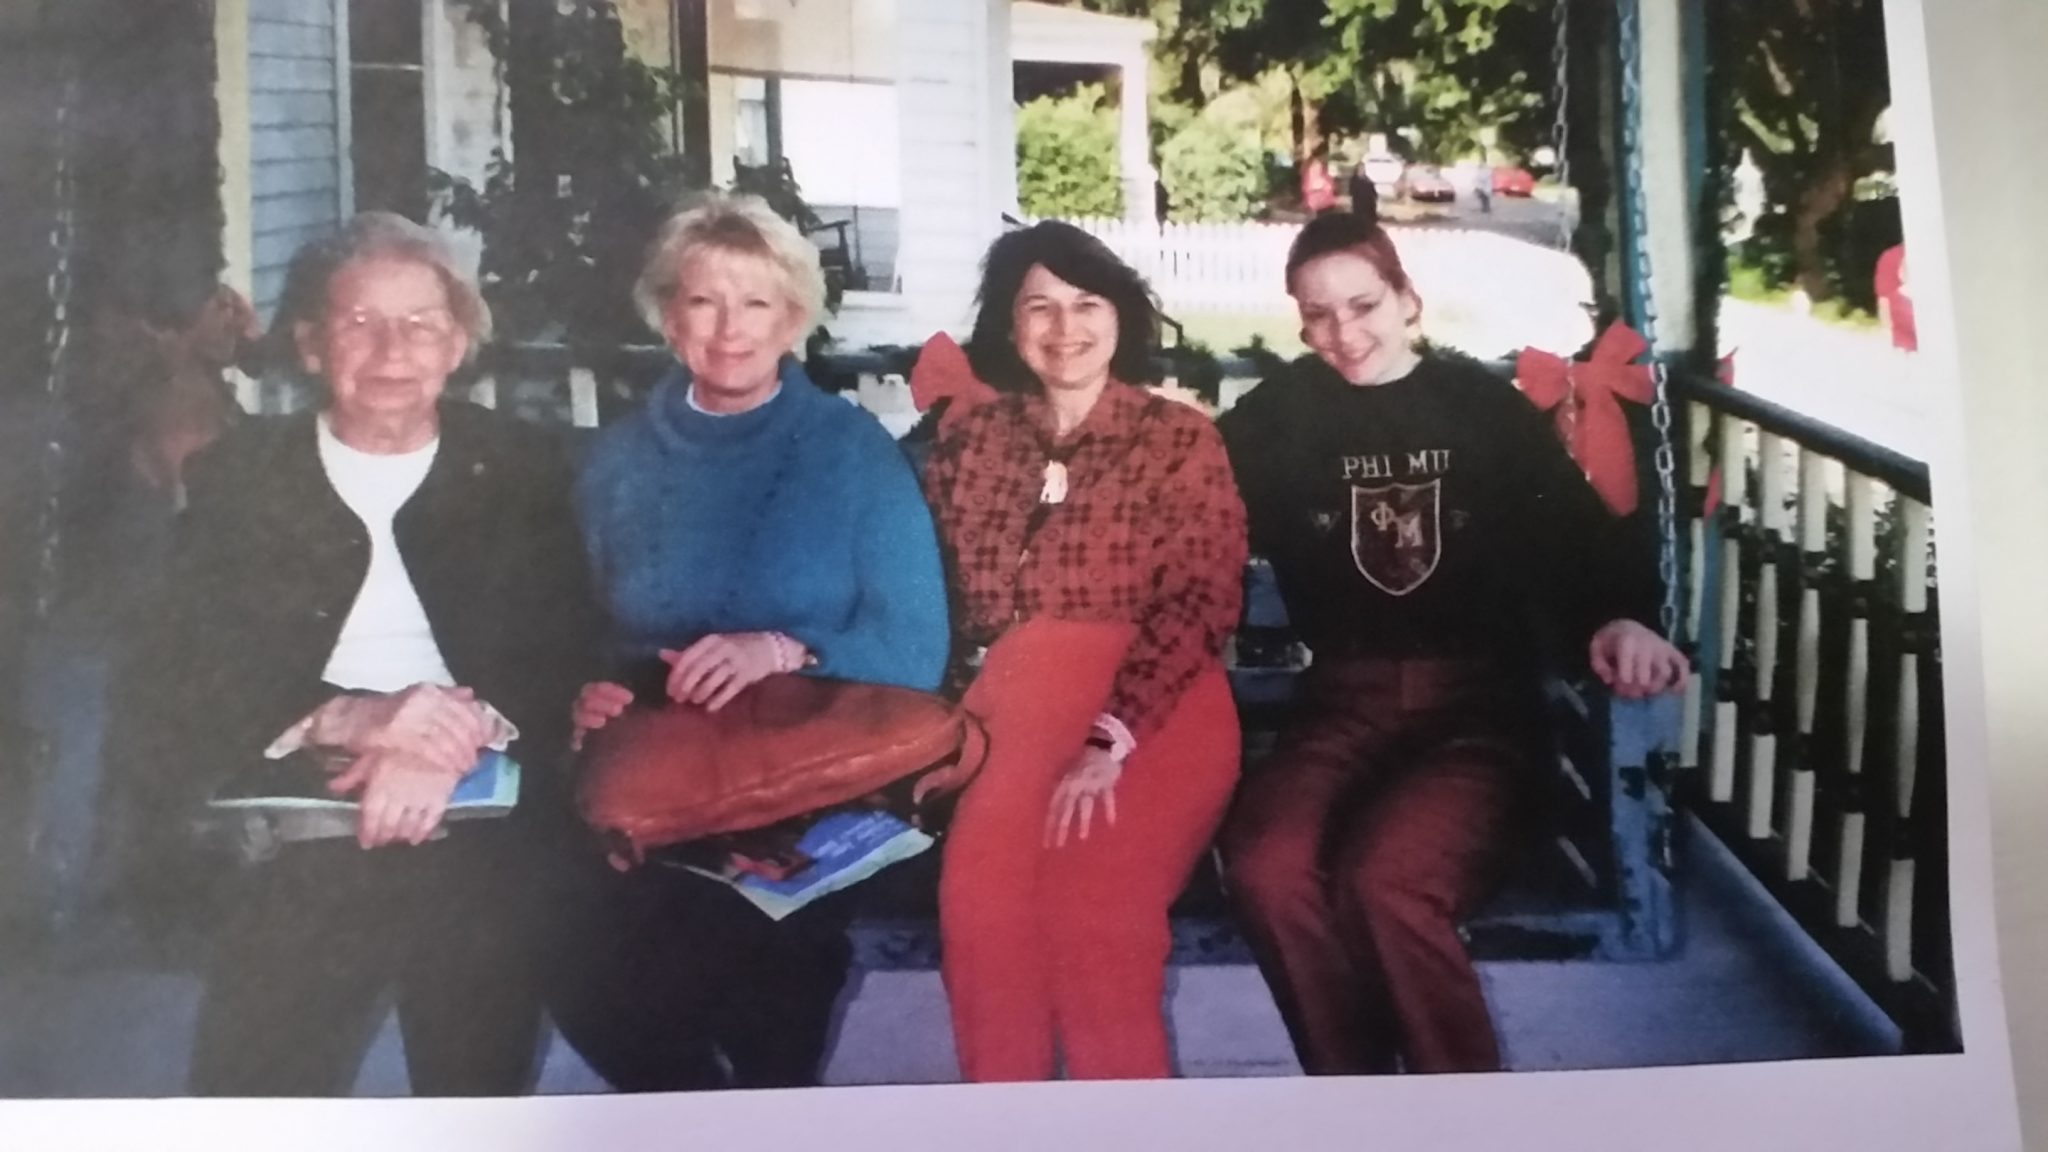 Hildegard joined daughter Gwen, Barbara and another Phi Mu at the 2002 Holiday Tour of Homes in Sanford.